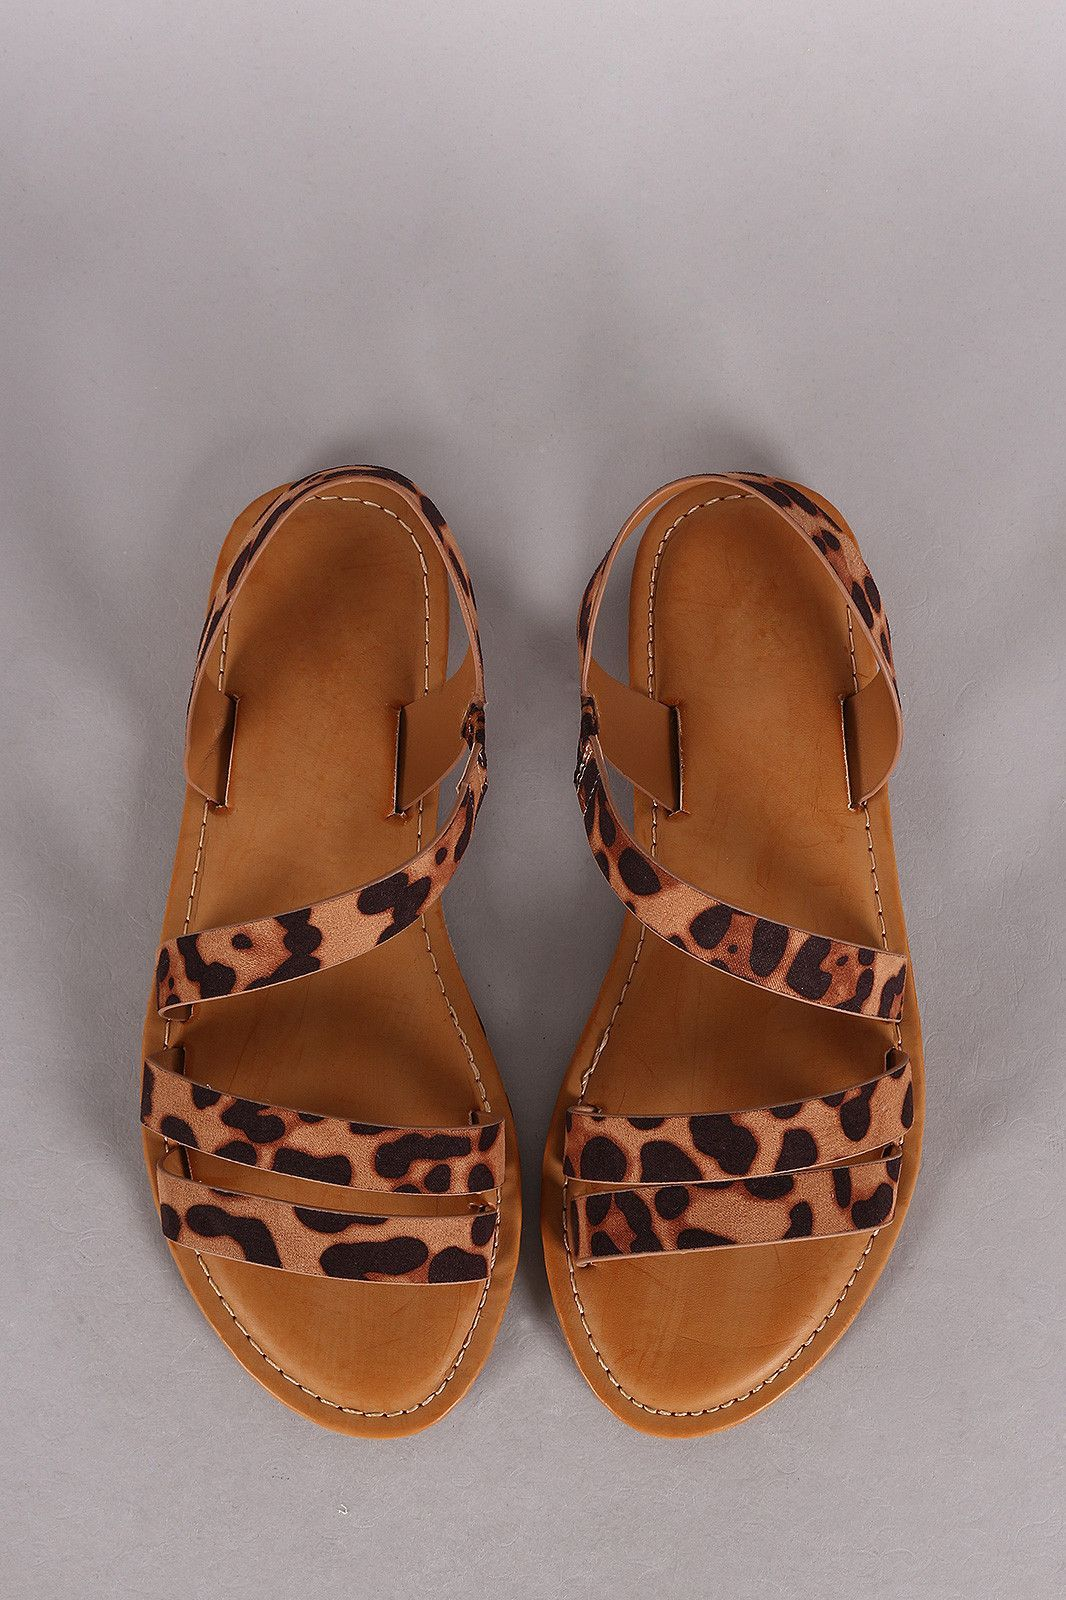 d63abe88bf3e Description This summery leopard print vegan suede upper, open toe  silhouette with asymmetrical strappy construction